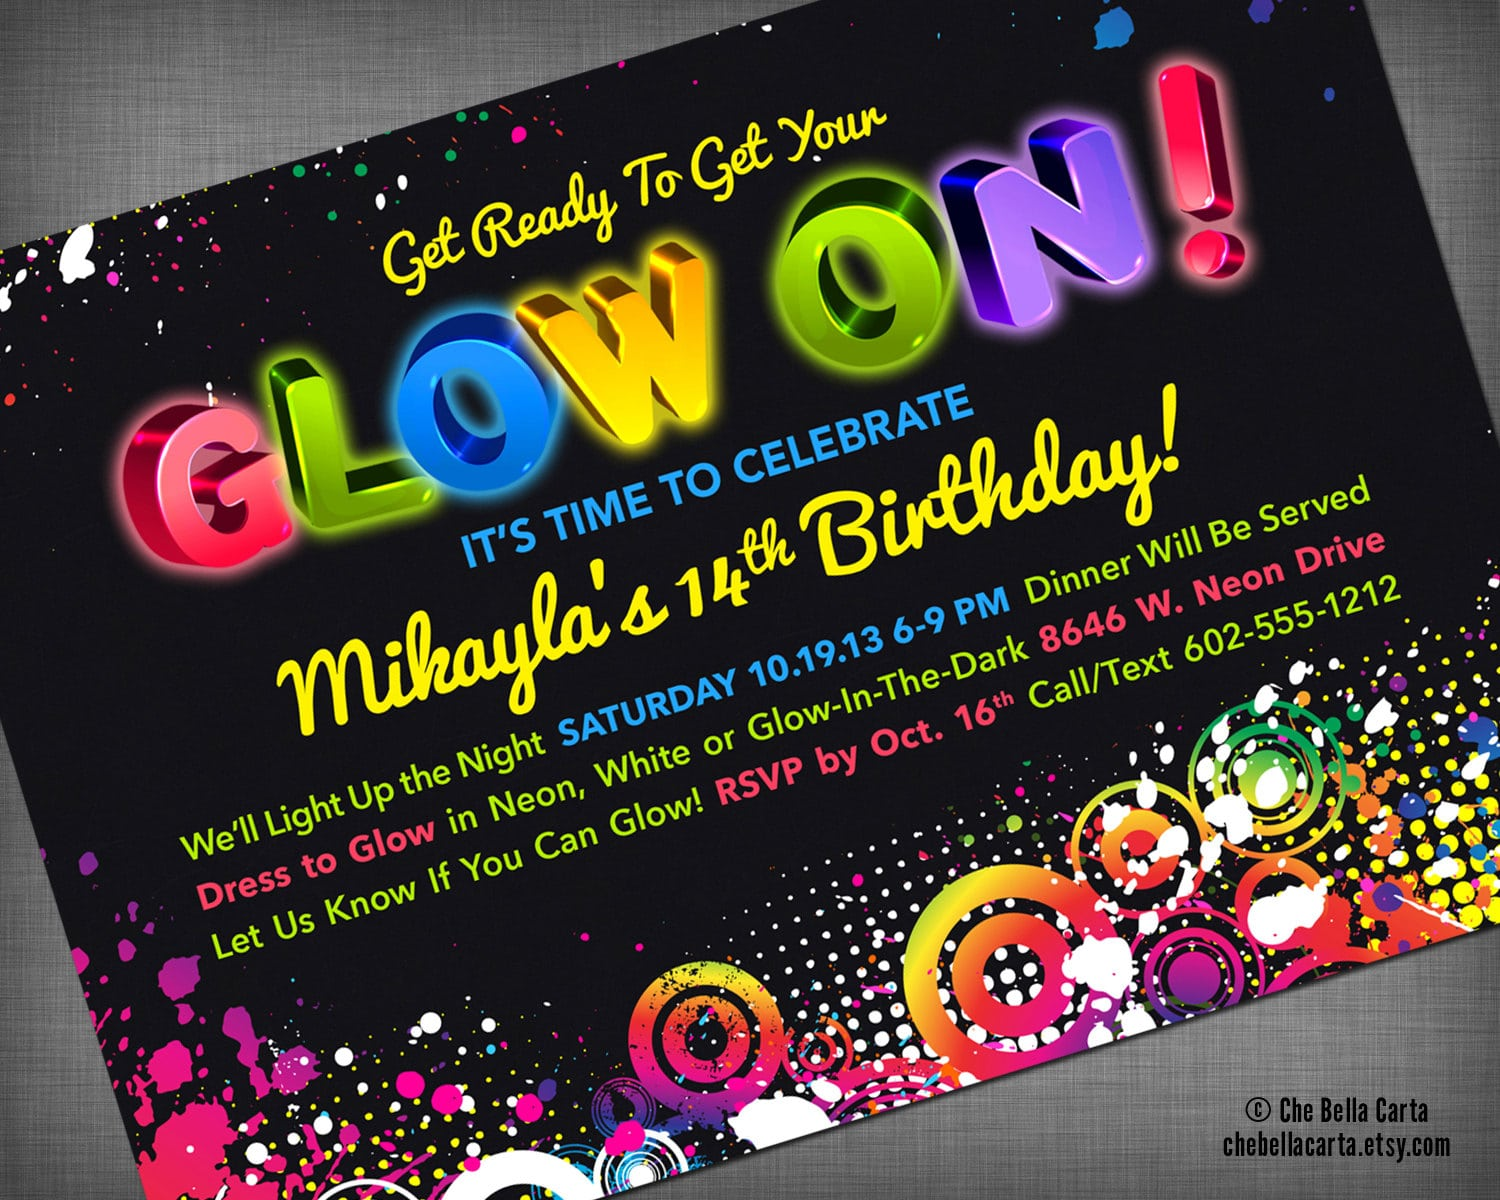 Black Light Party Invitations Black Light Party Invitations With A